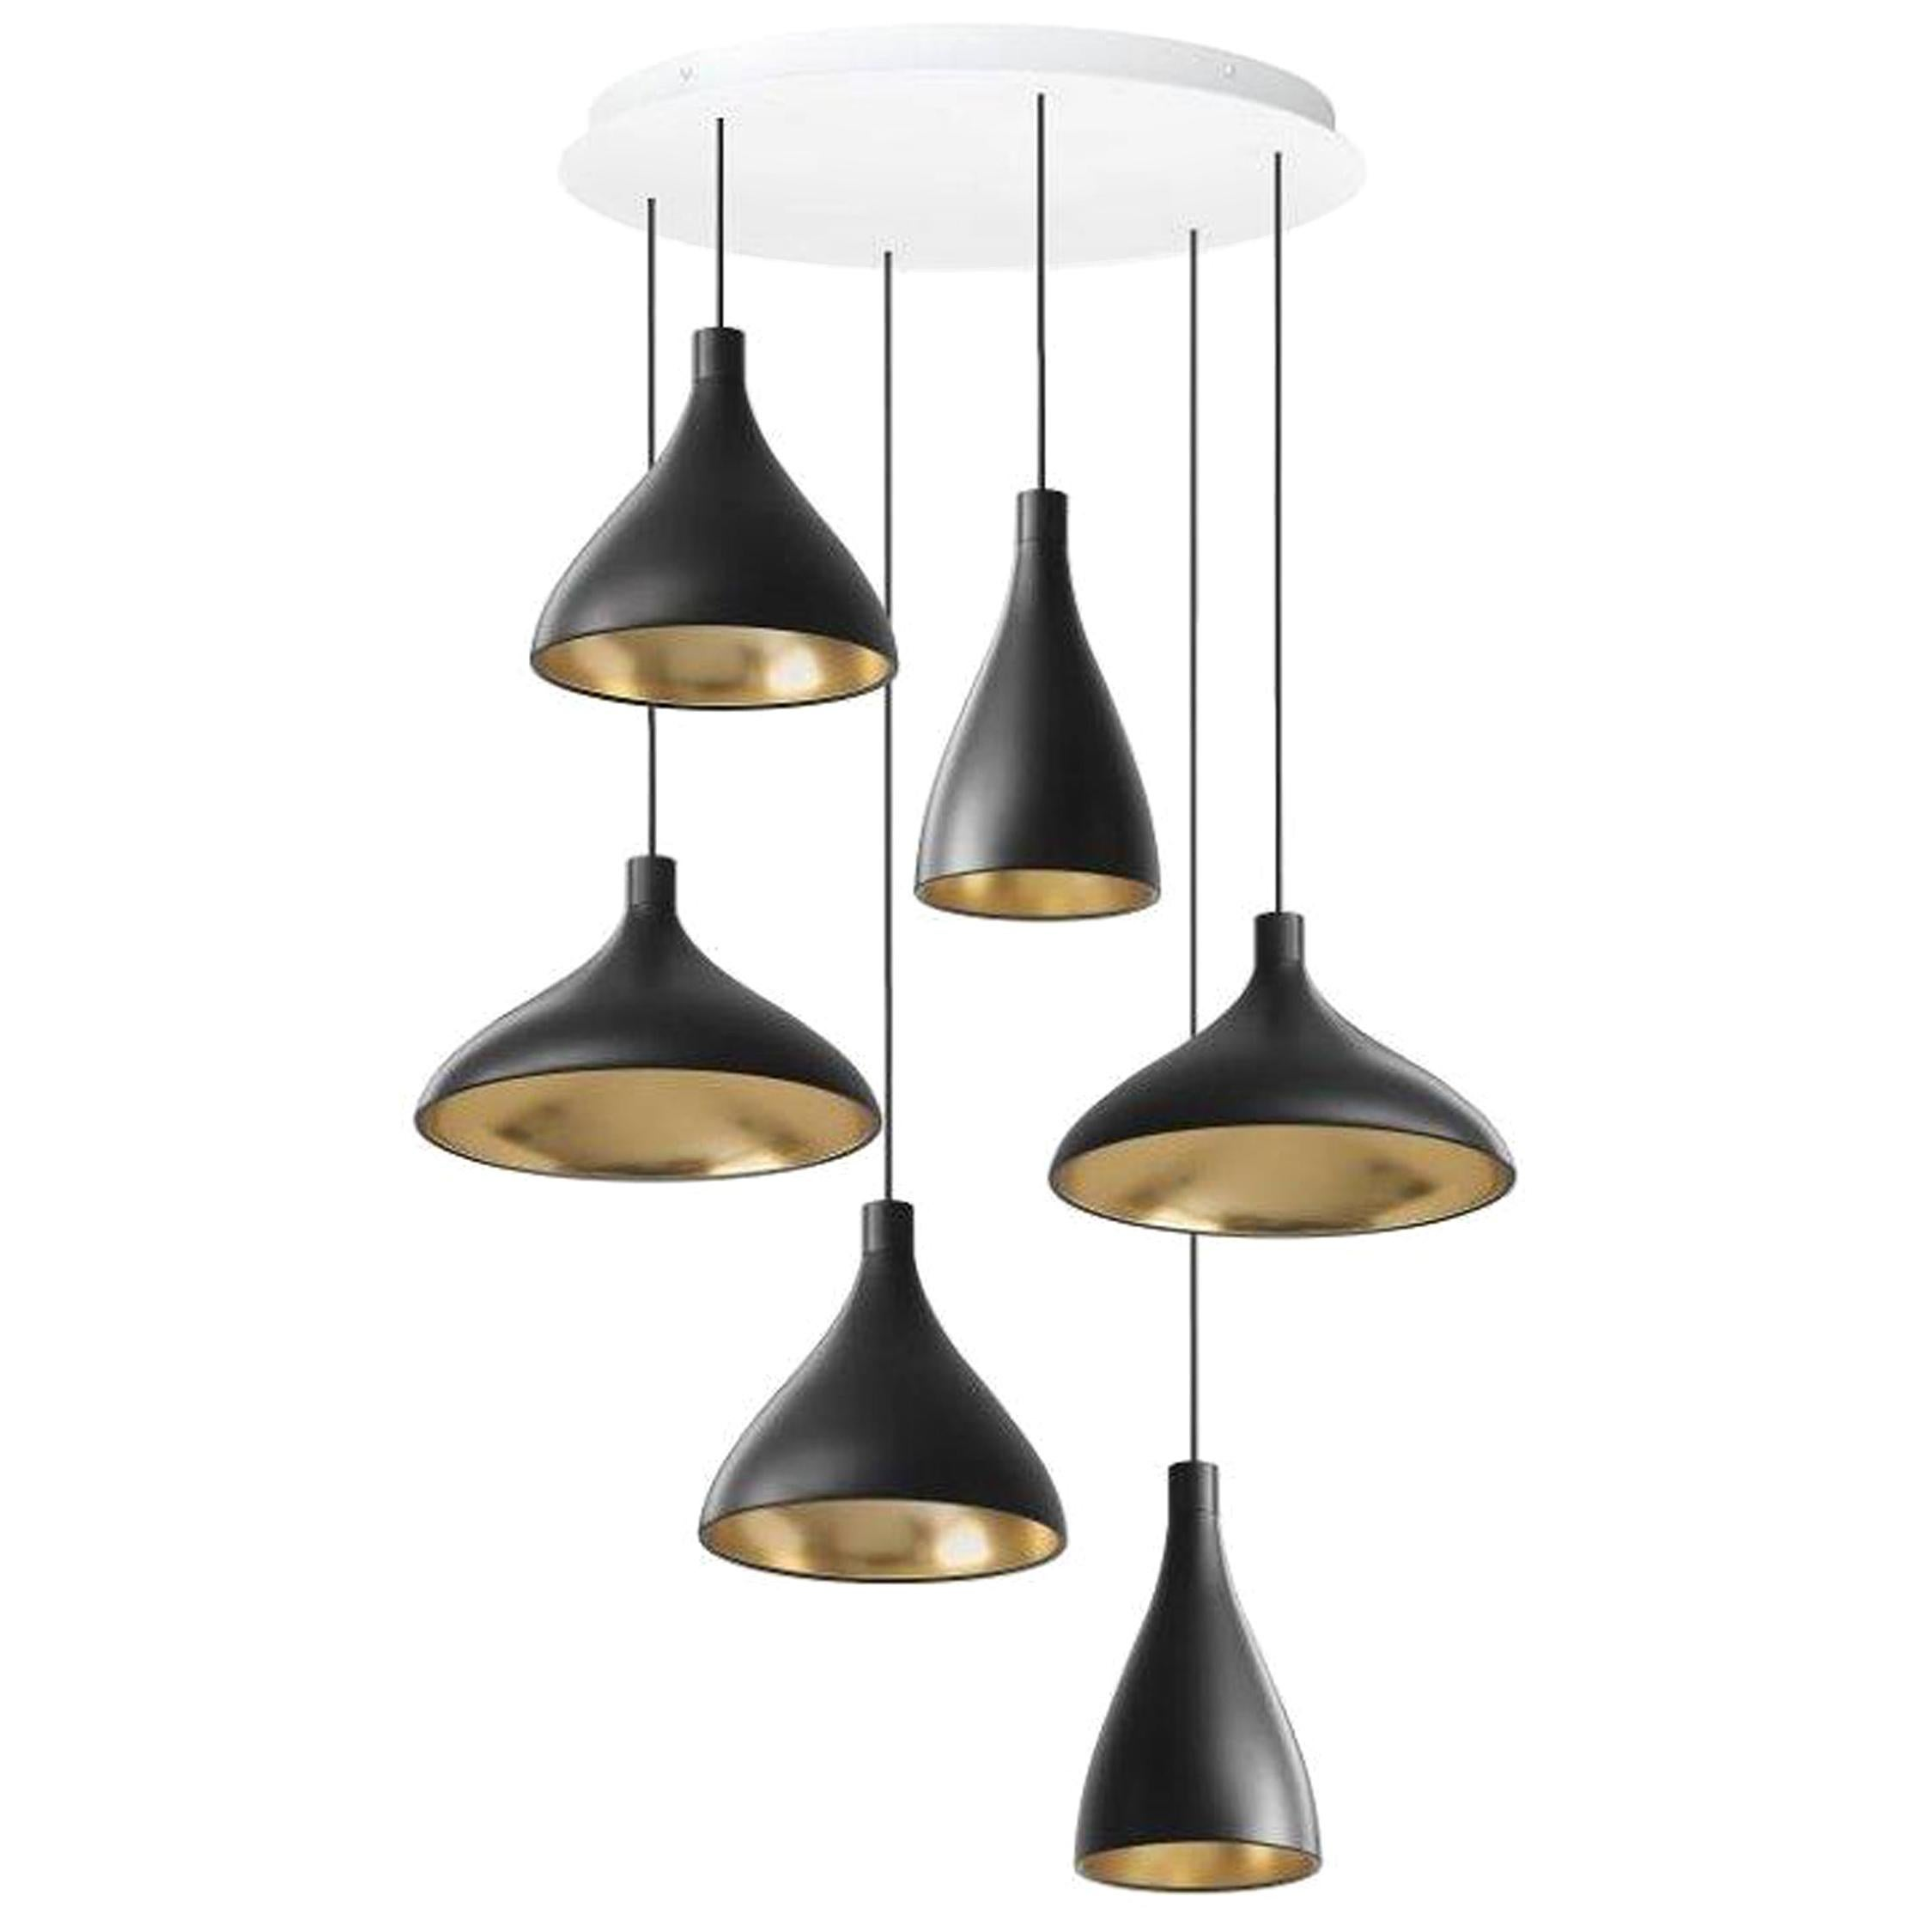 Swell XL LED 6-Piece Chandelier in Brass by Pablo Designs